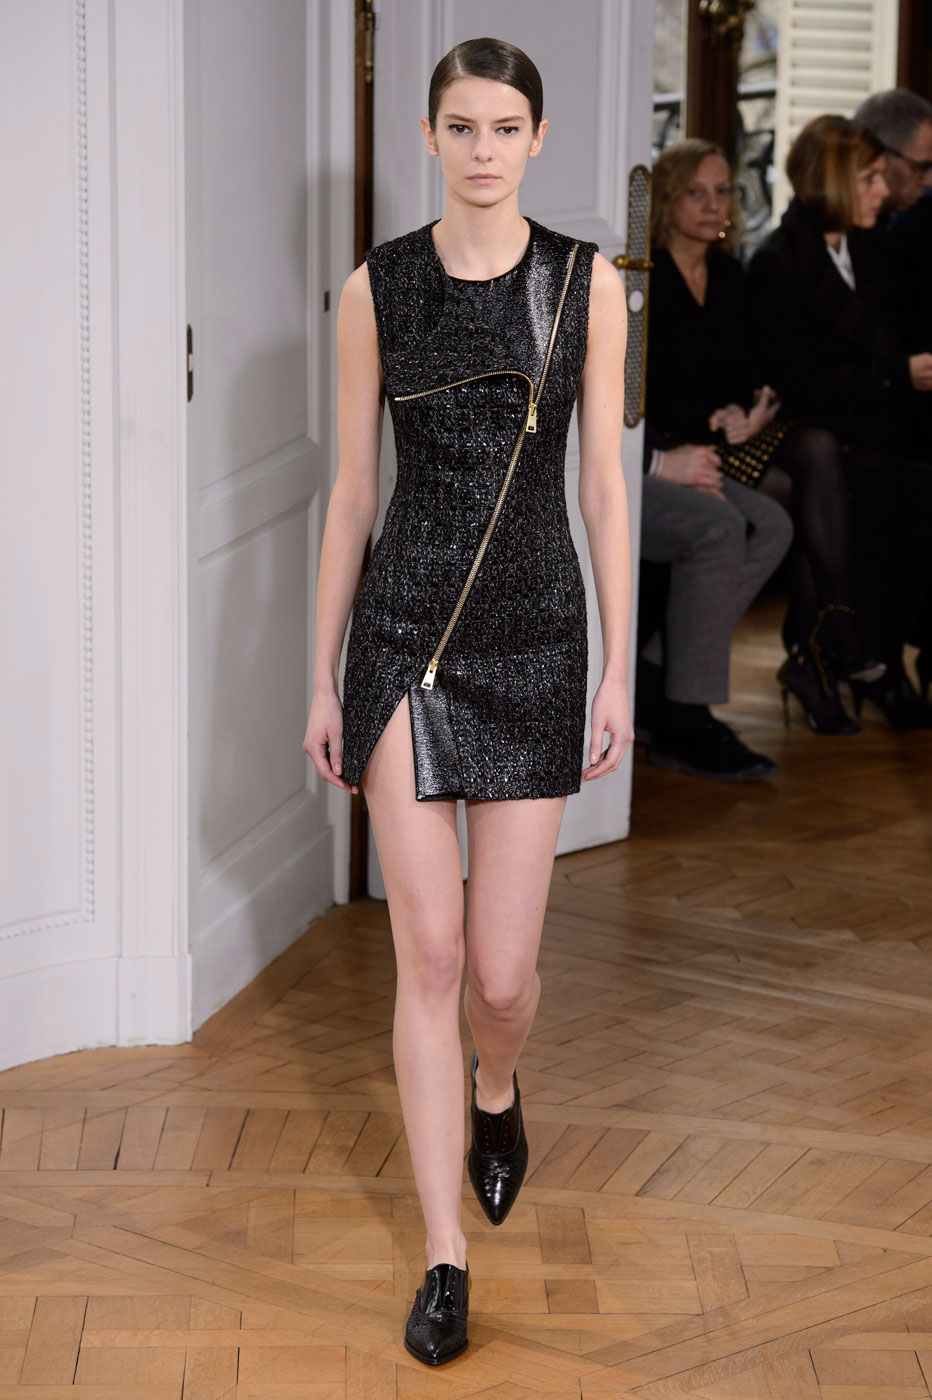 Bouchra-Jarrar-fashion-runway-show-haute-couture-paris-spring-summer-2015-the-impression-03